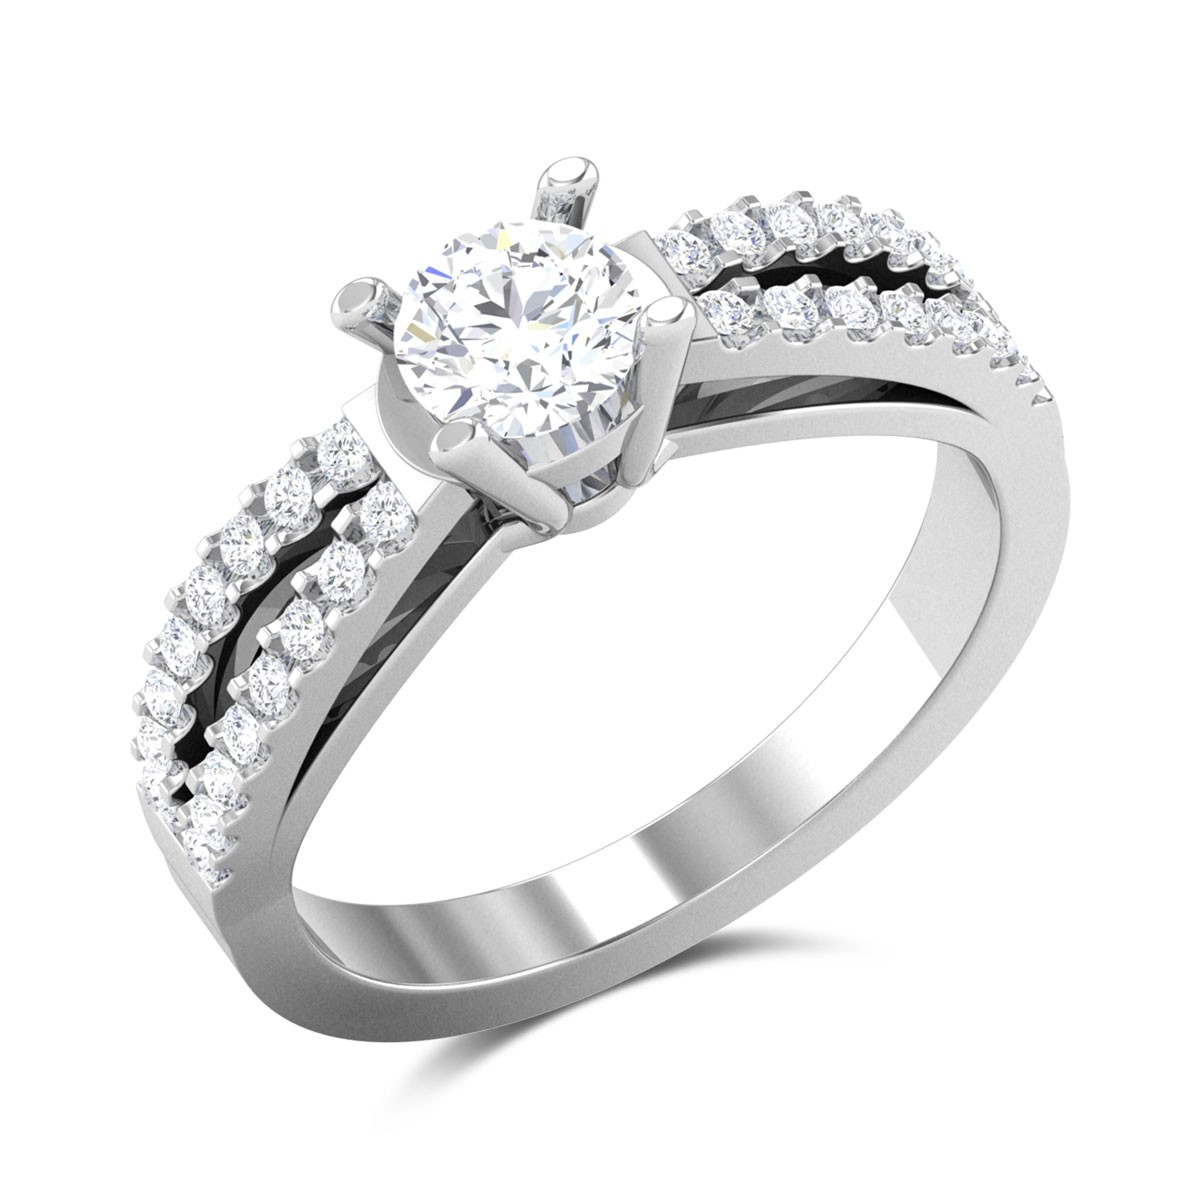 Dual Band 4 Prong Solitaire Ring